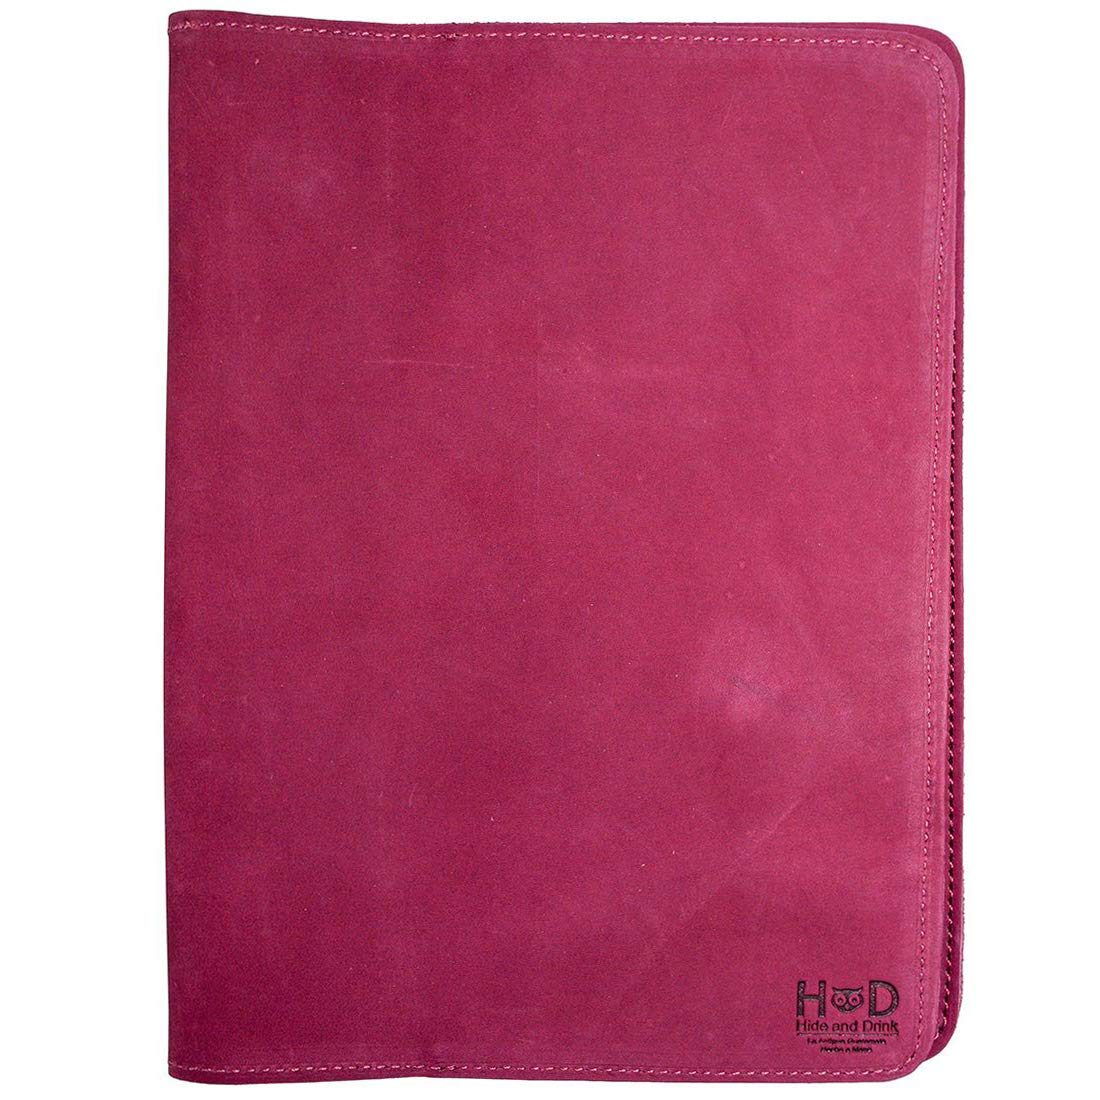 Hide & Drink, Rustic Leather Refillable Journal Cover for Moleskine Cahier XL (7.5 x 9.75 in.) Handmade Includes 101 Year Warranty :: Red Velvet Suede